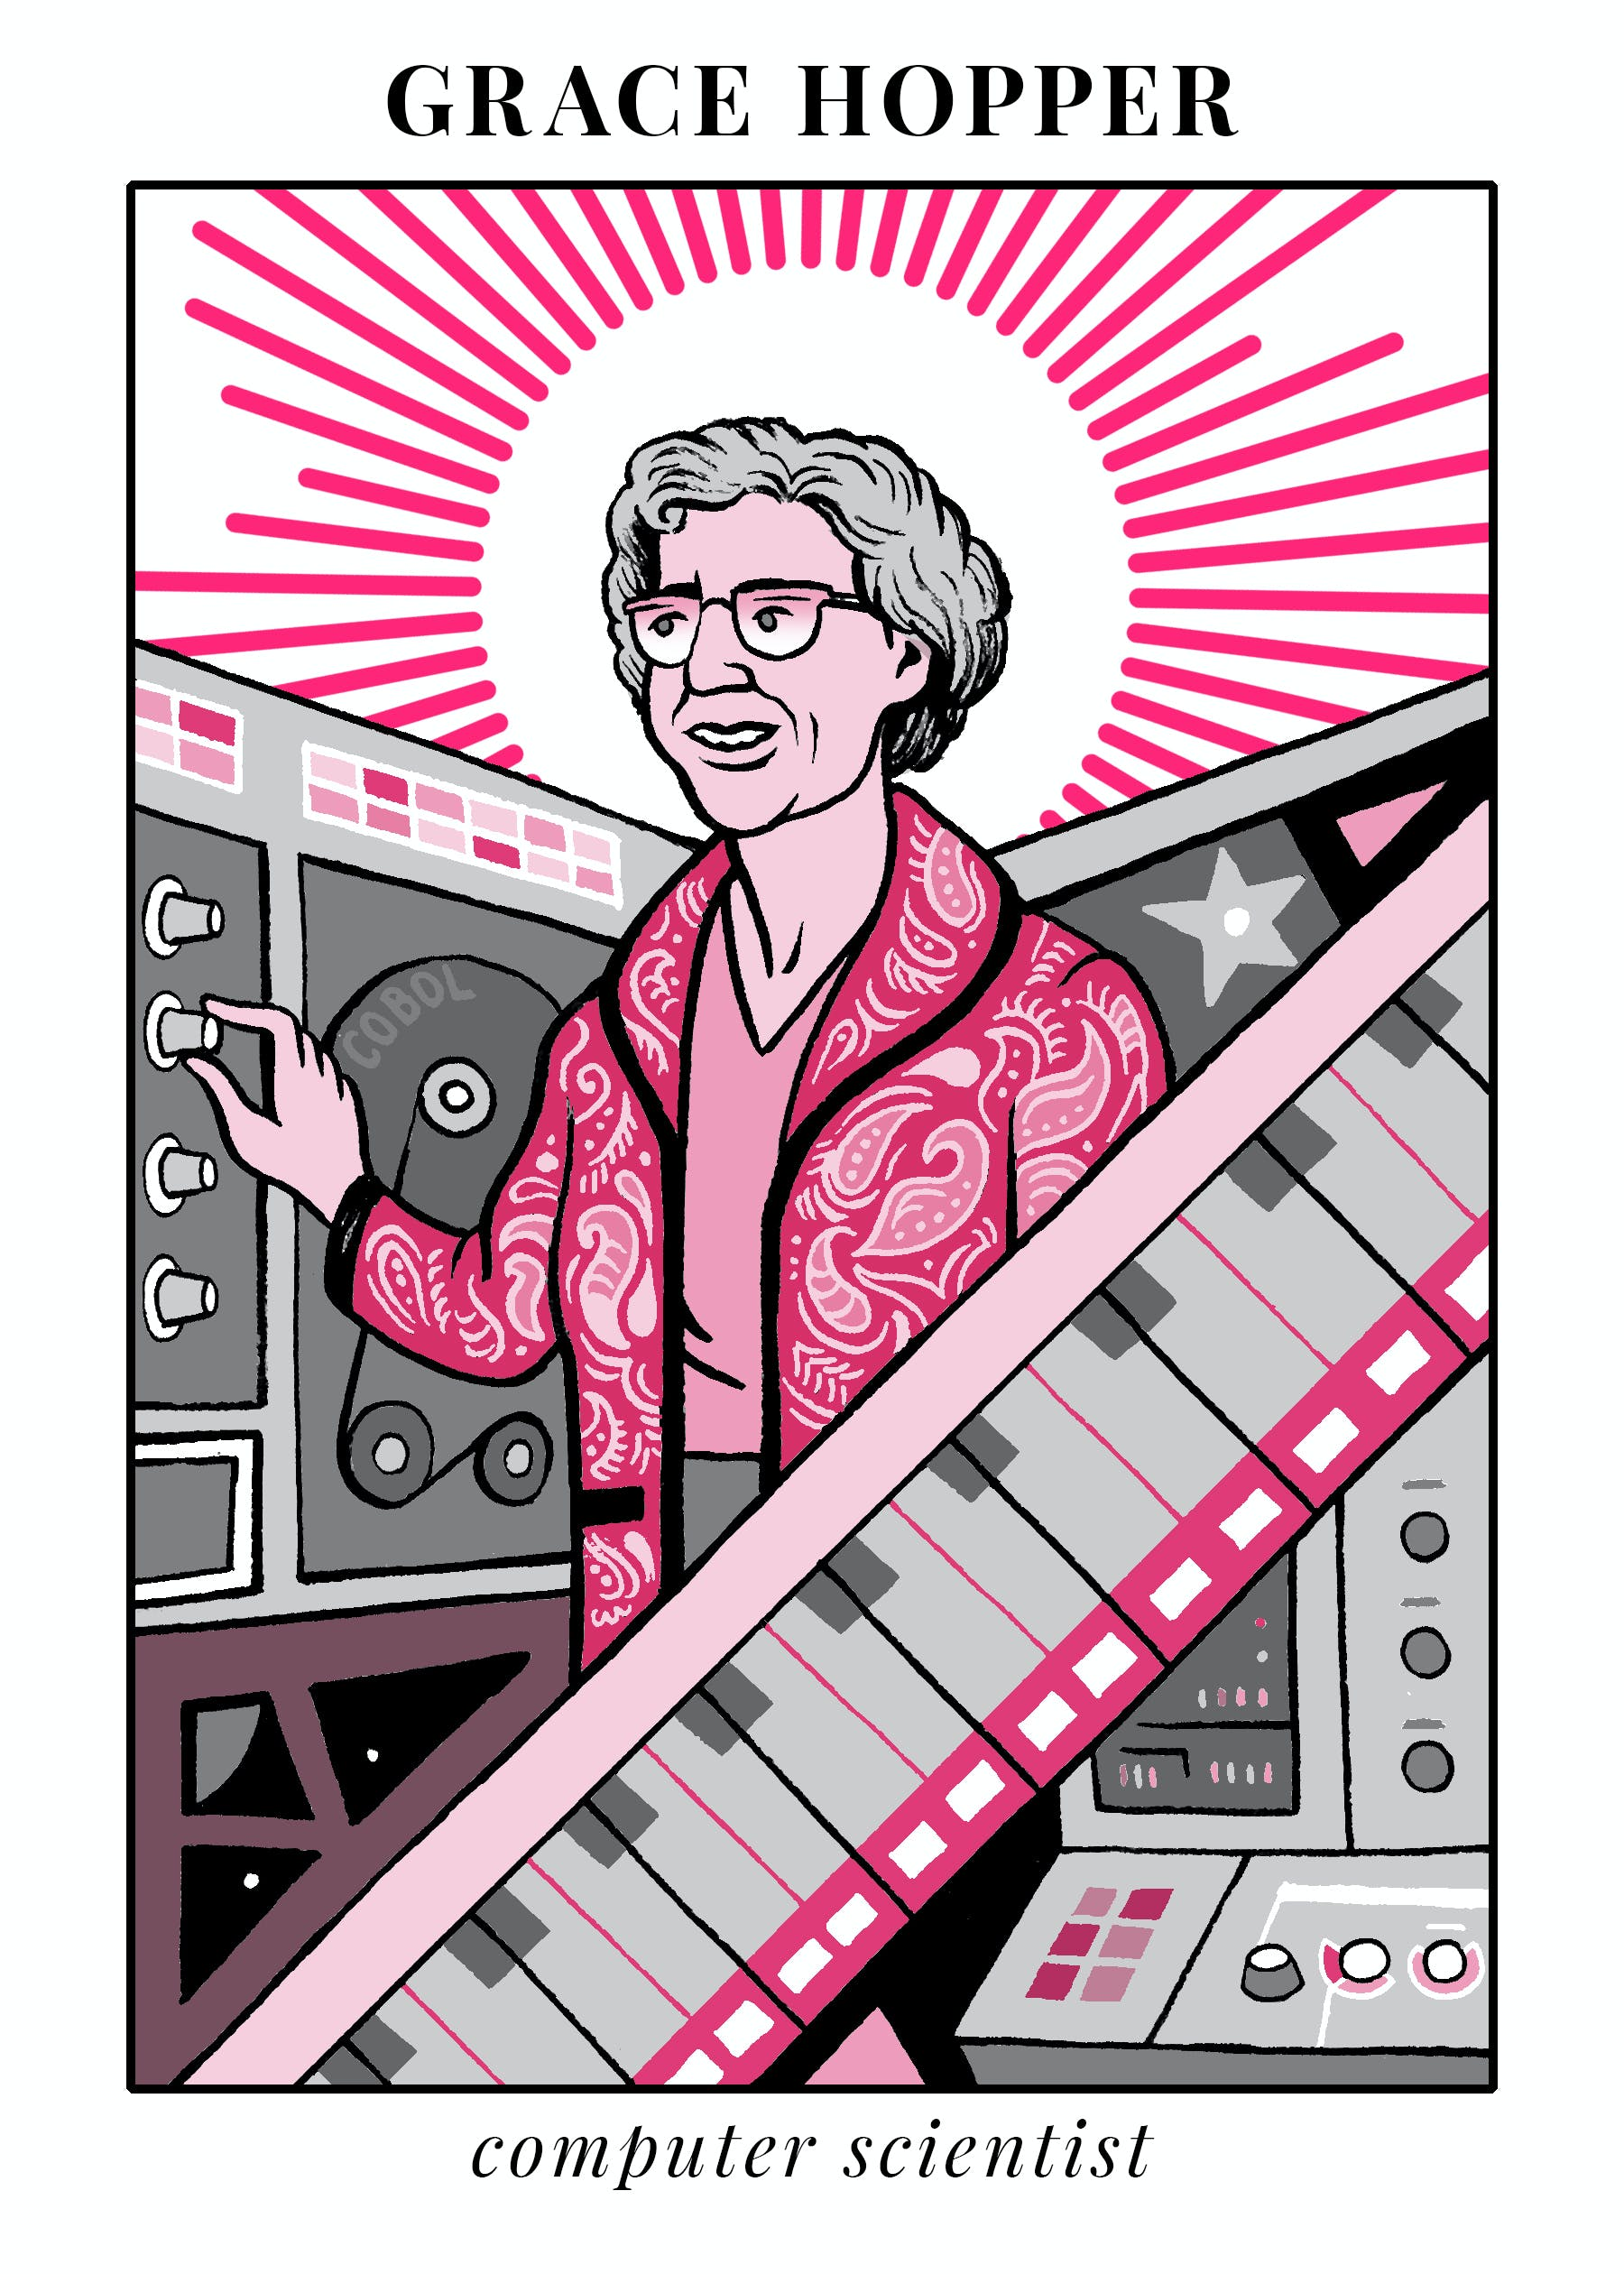 Tarot card image of Grace Hopper surrounded by computers and machines